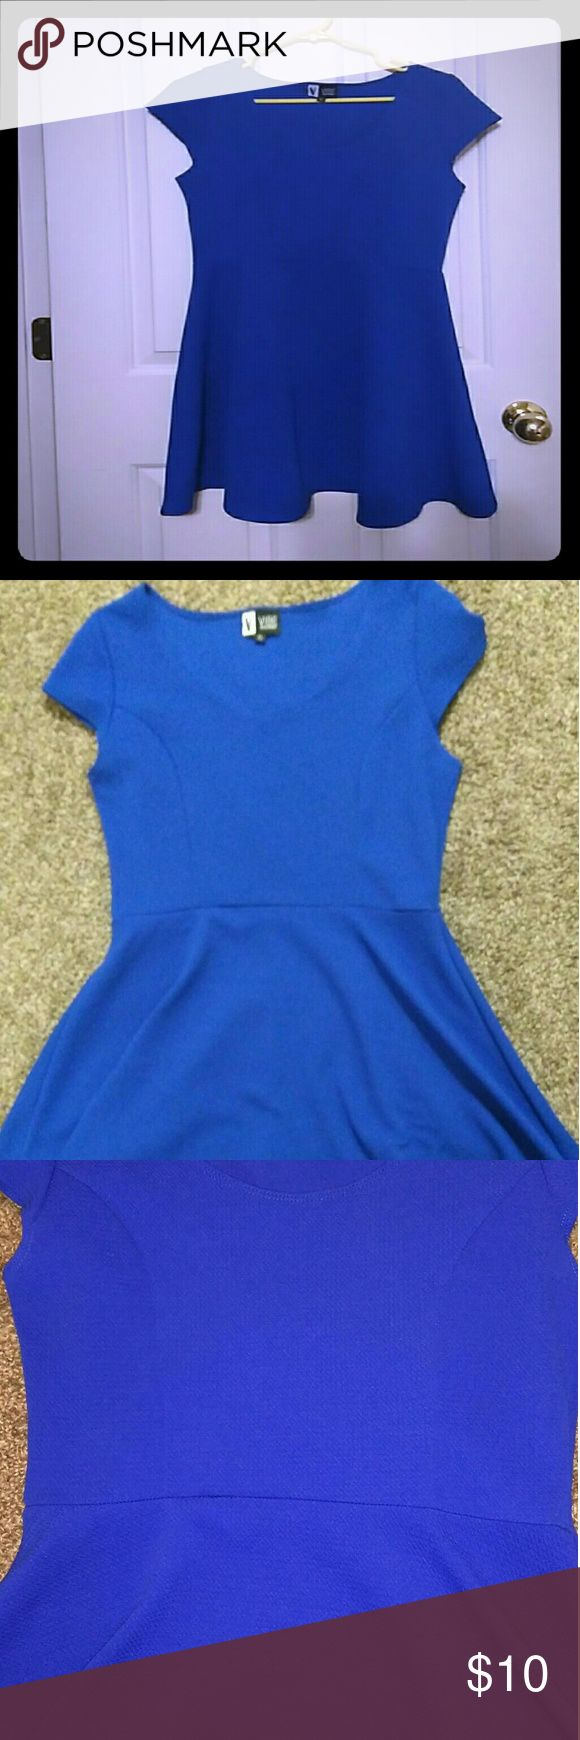 Royal Blue Vibe Skater Dress Size XL skater dress. Also looks great with leggings. Brand is Vibe Sportswear, in great condition. Dresses Mini